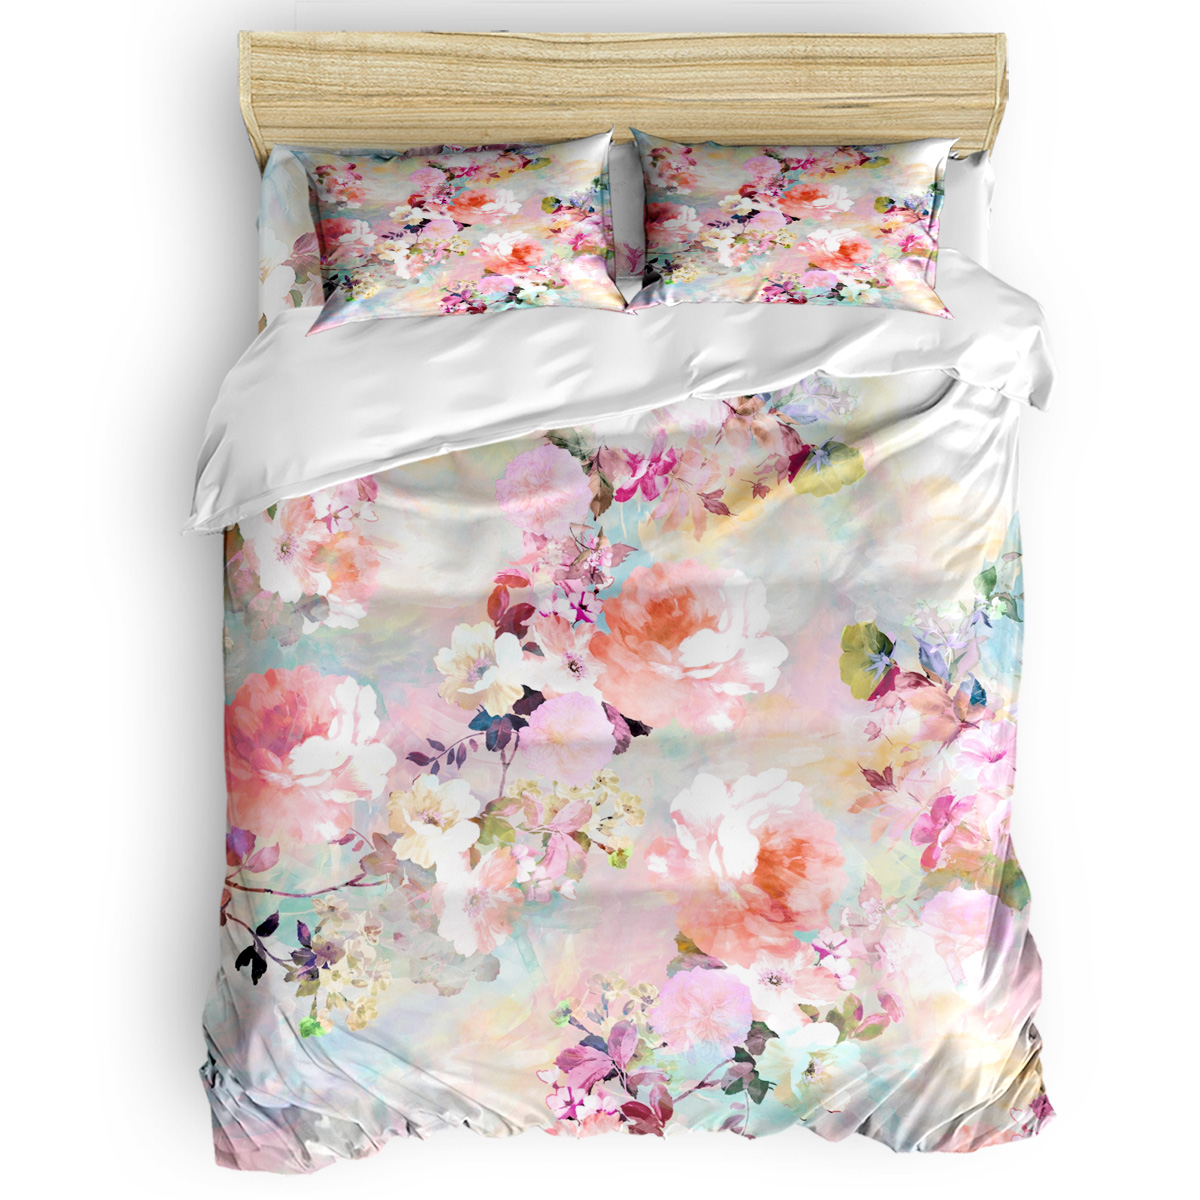 Love Of A Flower Duvet Cover 3D Cotton Duvet Cover King Size Queen Size Quilt Cover Set Bedclothes Comforter Single Bedding Sets